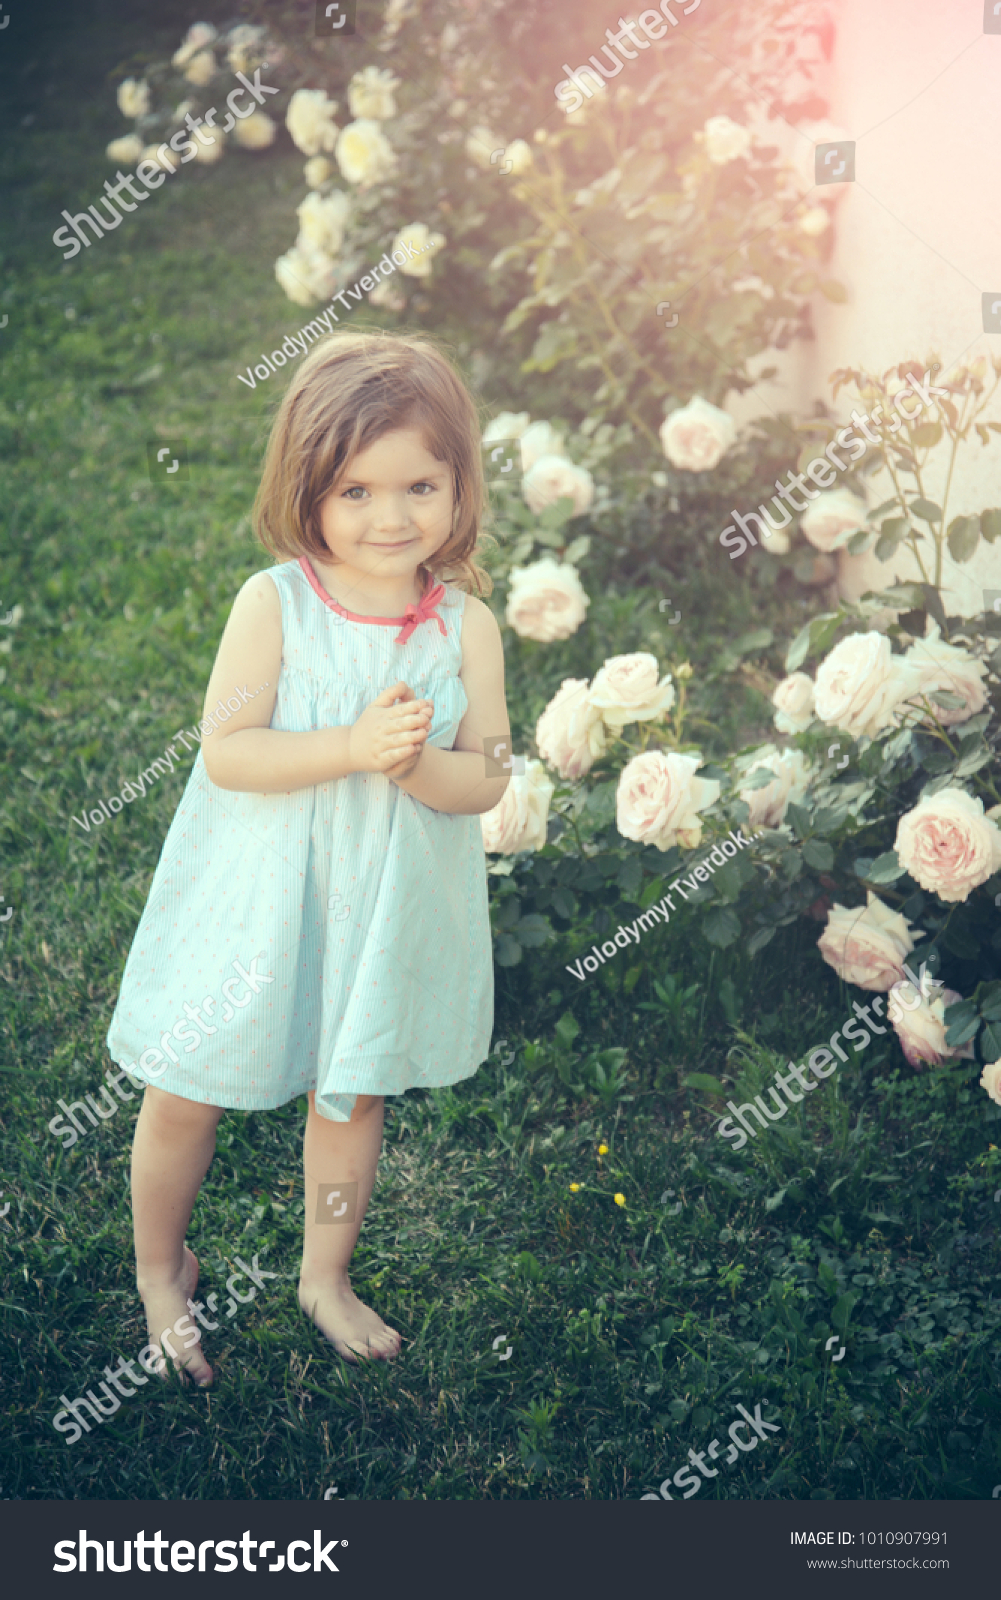 innocence purity youth concept girl smiling stock photo edit now